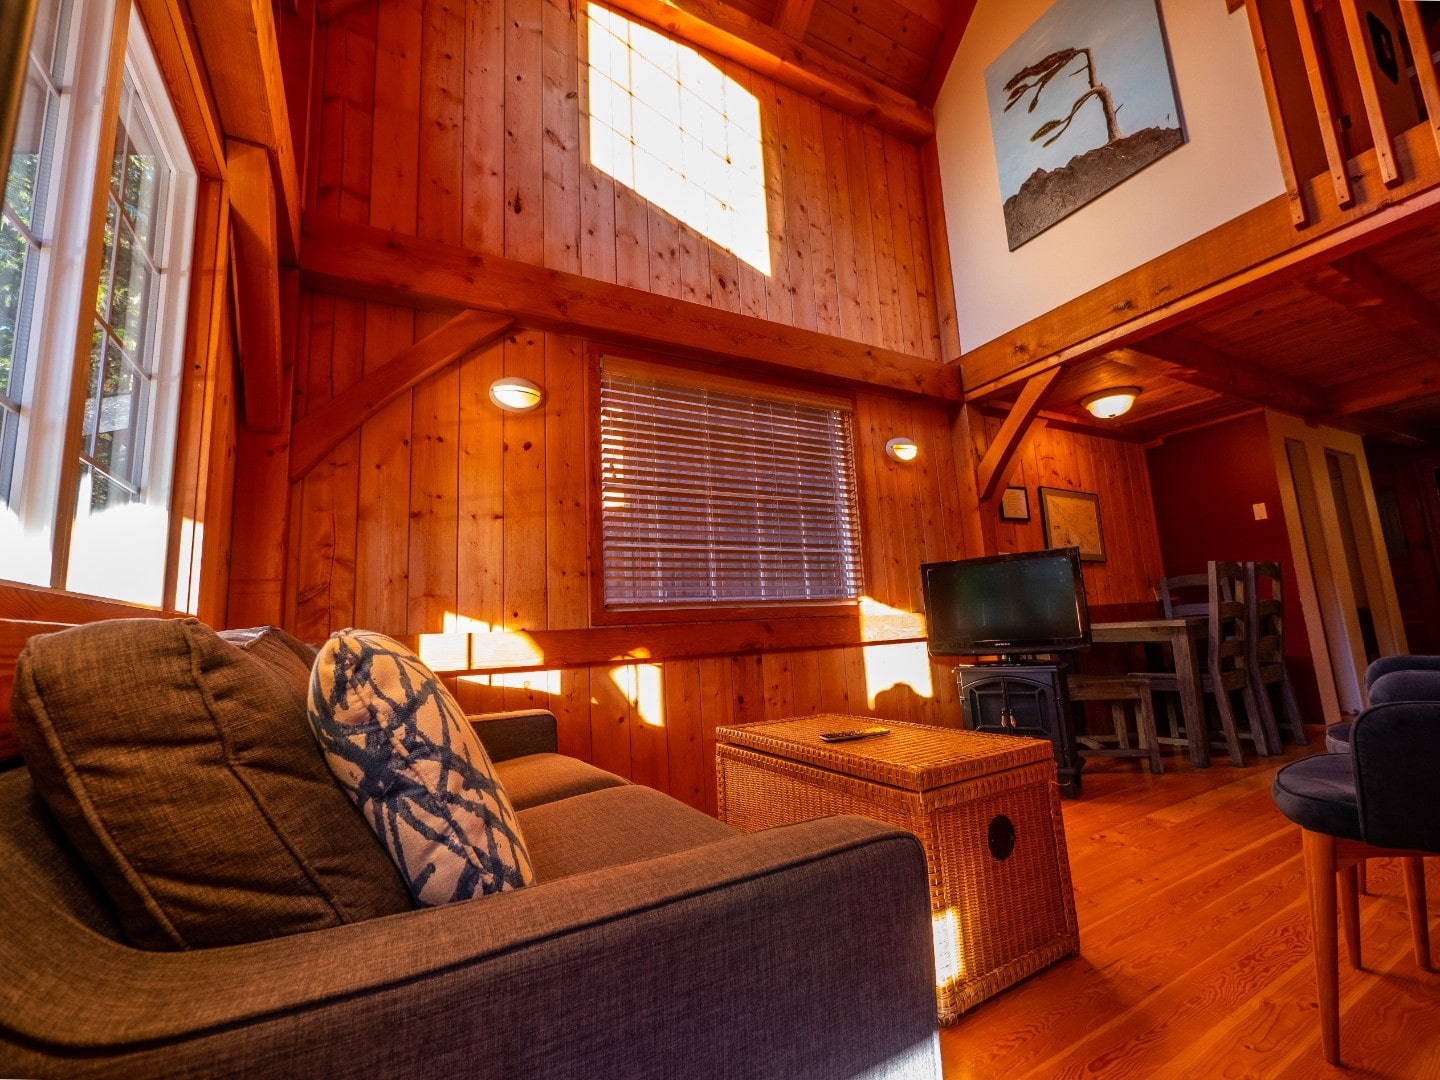 Portside - Inside Rainforest Ucluelet Accommodation